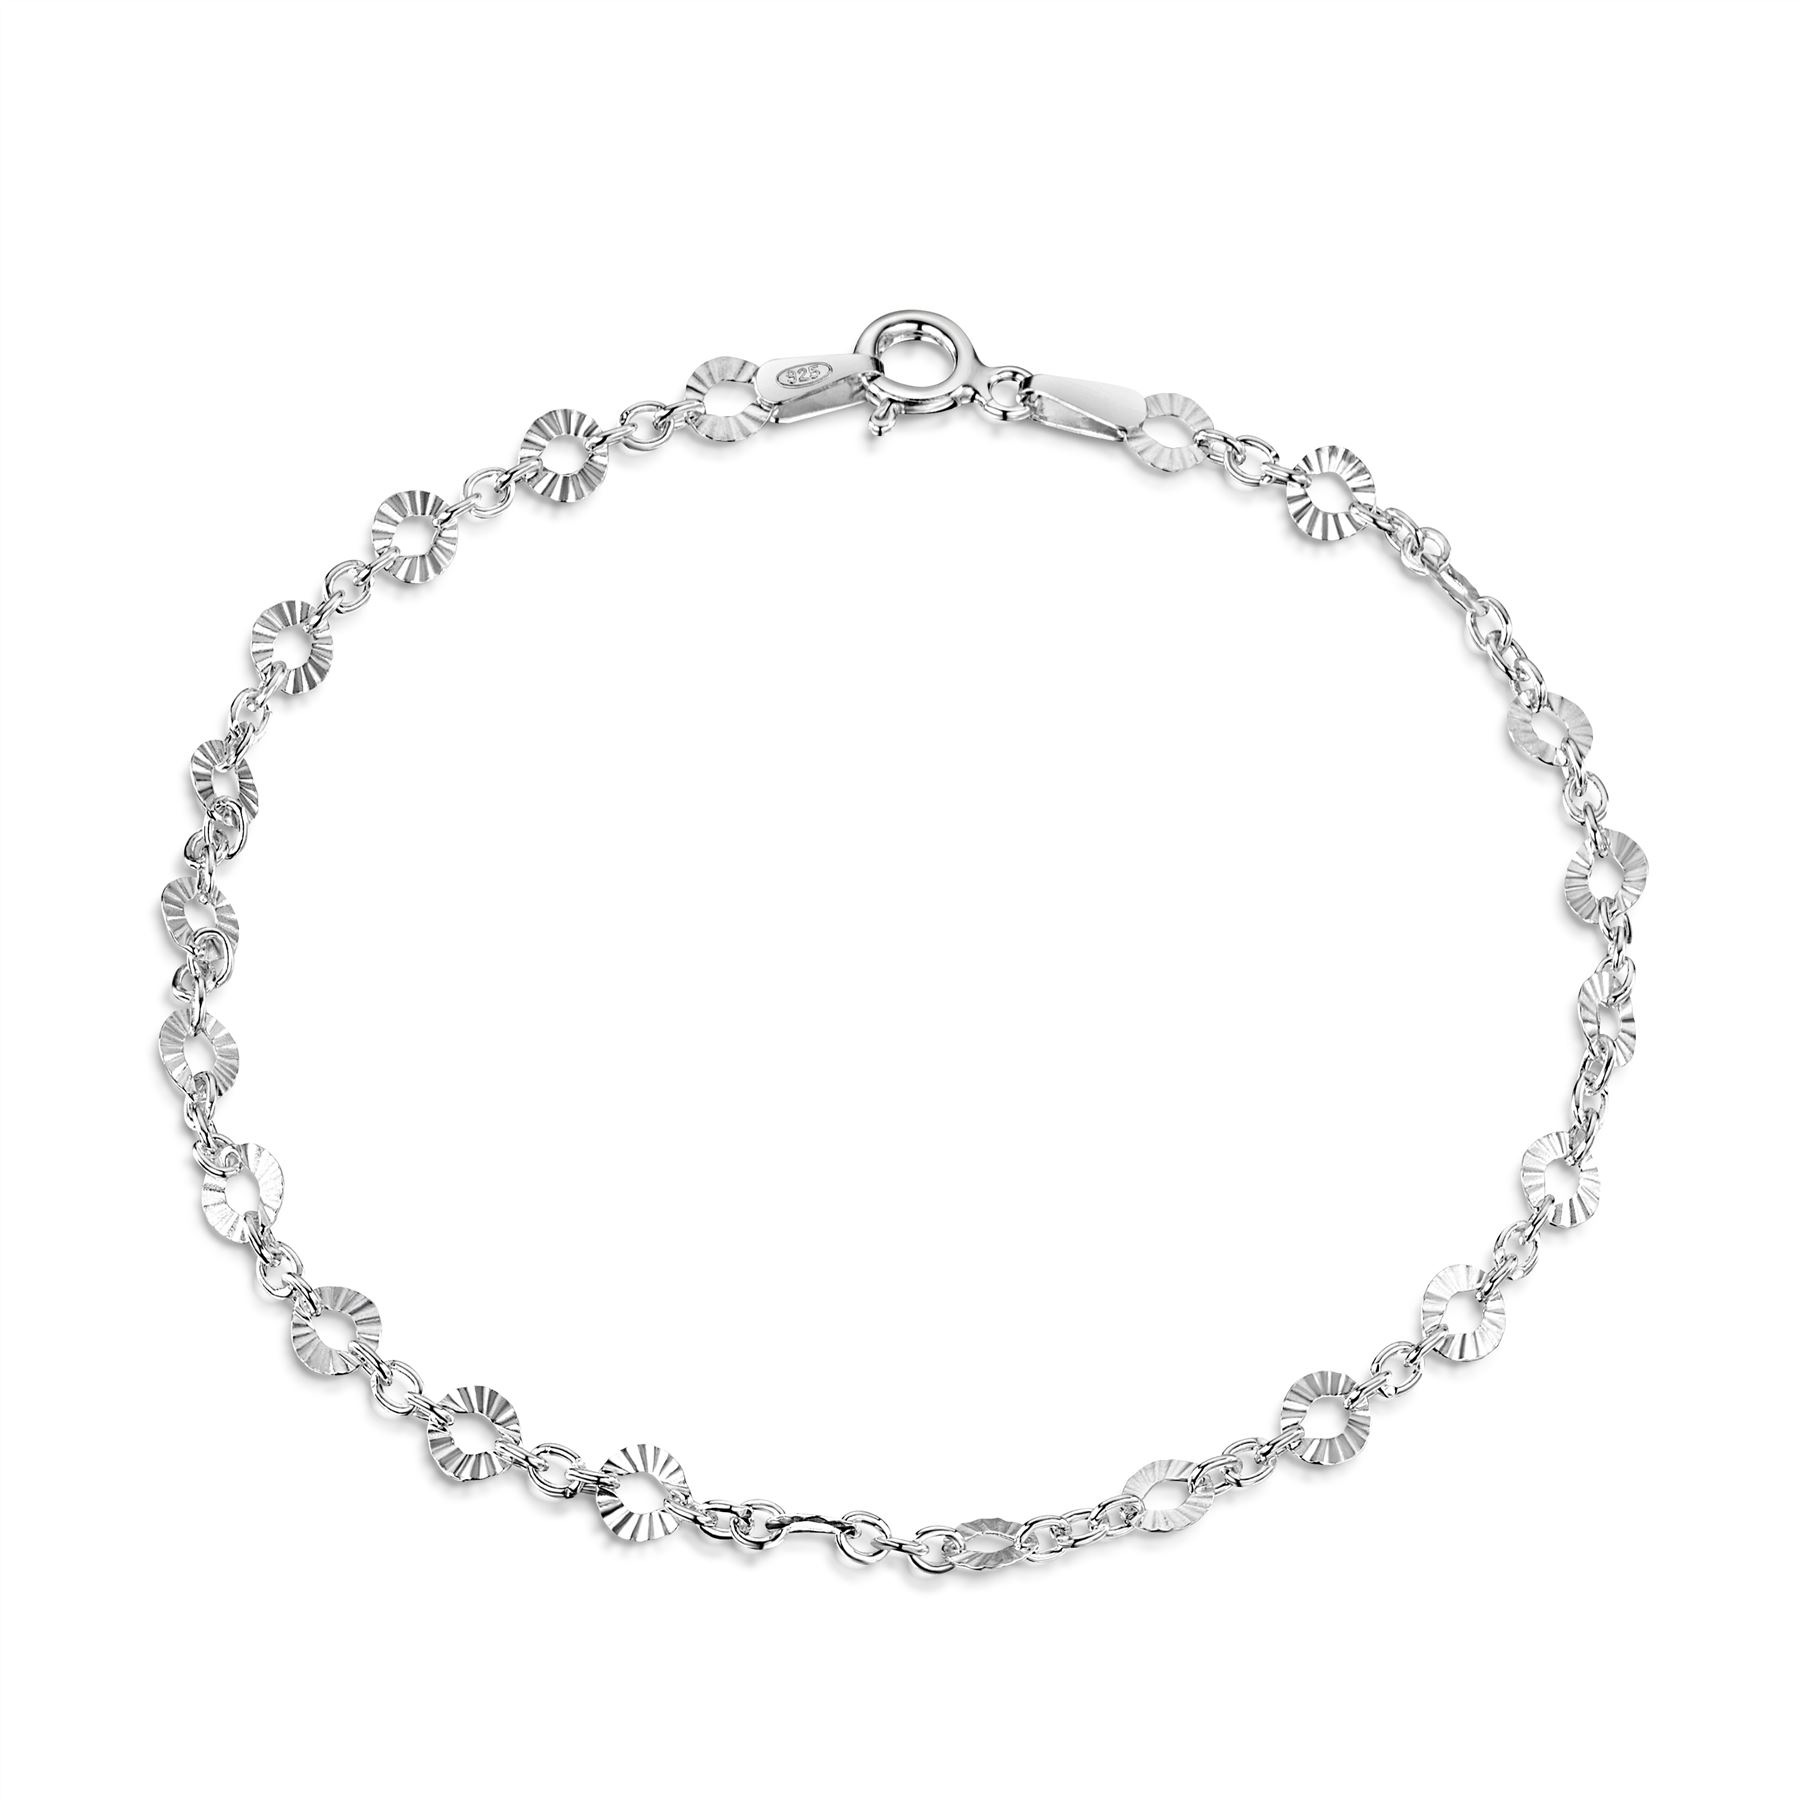 Amberta-Jewelry-Genuine-925-Sterling-Silver-Bracelet-Bangle-Chain-Made-in-Italy thumbnail 22